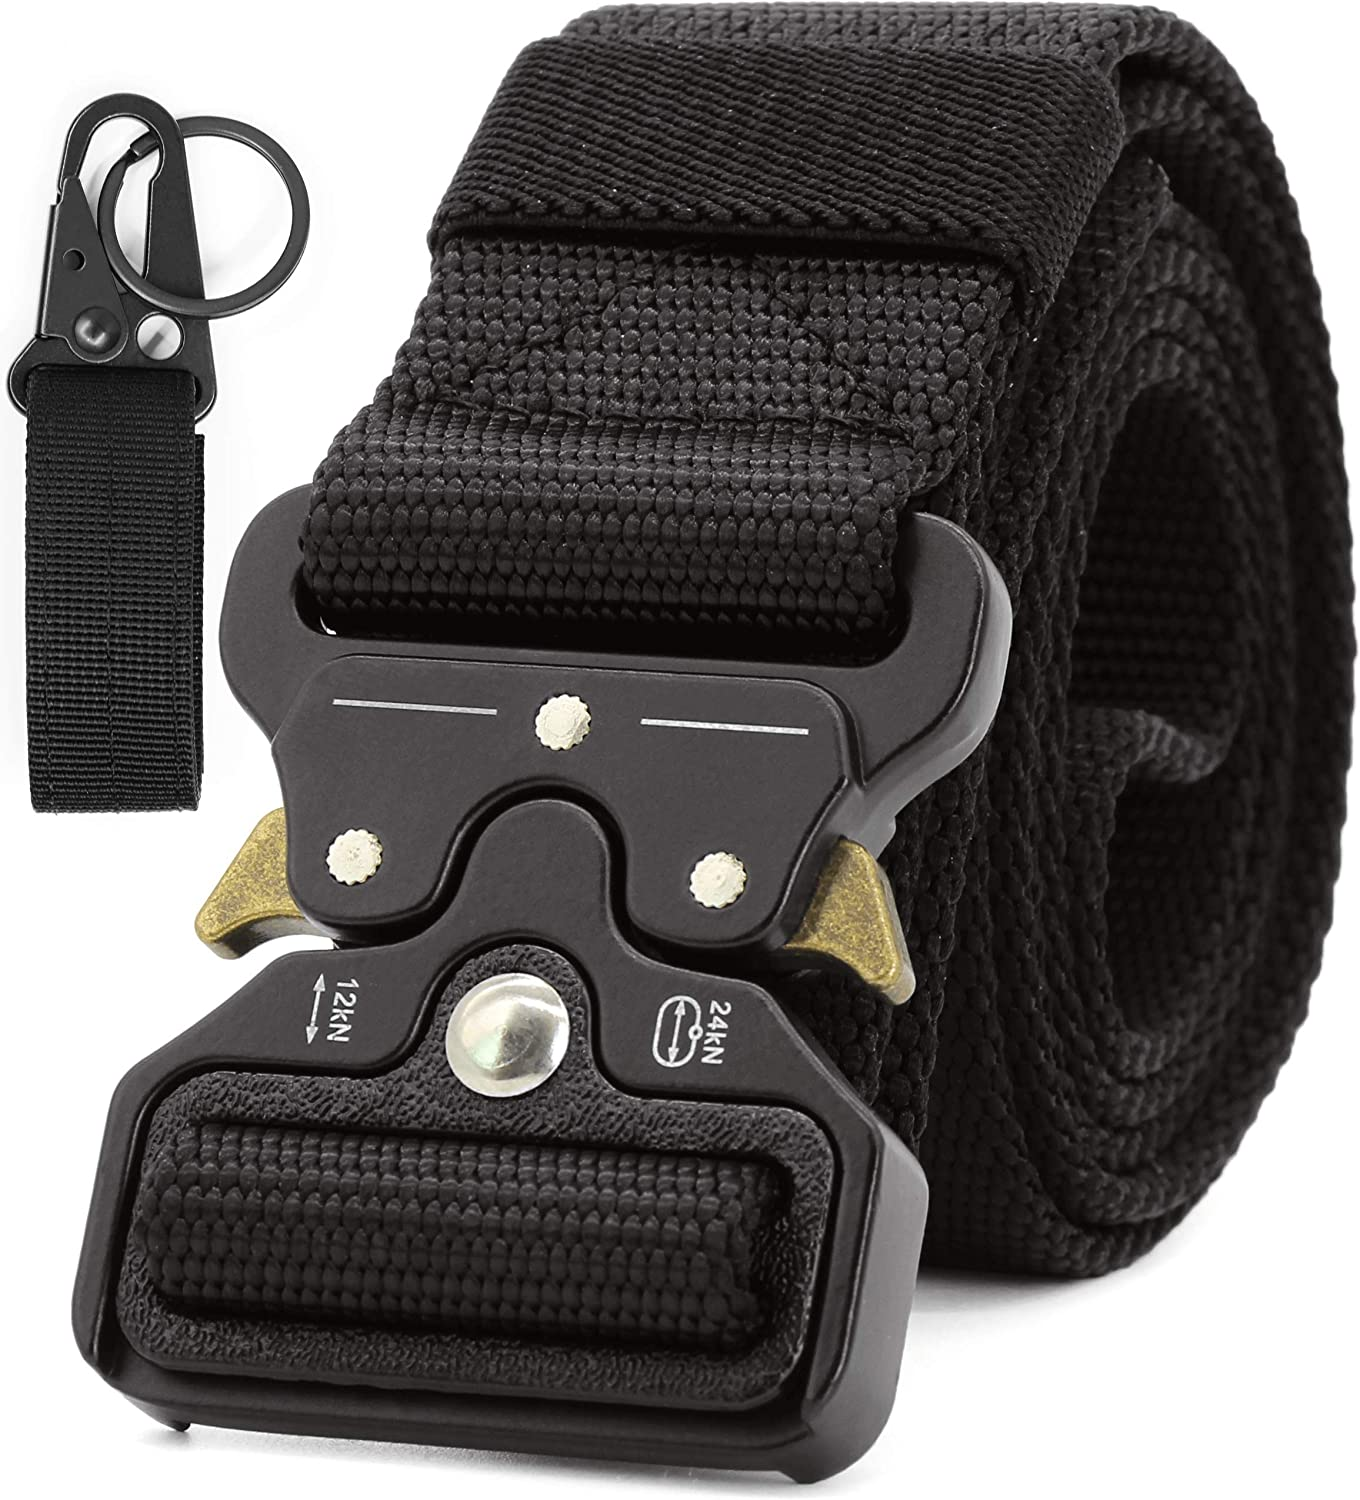 1 PLY 1.5 Nylon Heavy Duty Everyday Belt CHESSUN Mens Tactical Belt Heavy Duty with Quick Release Metal Buckle